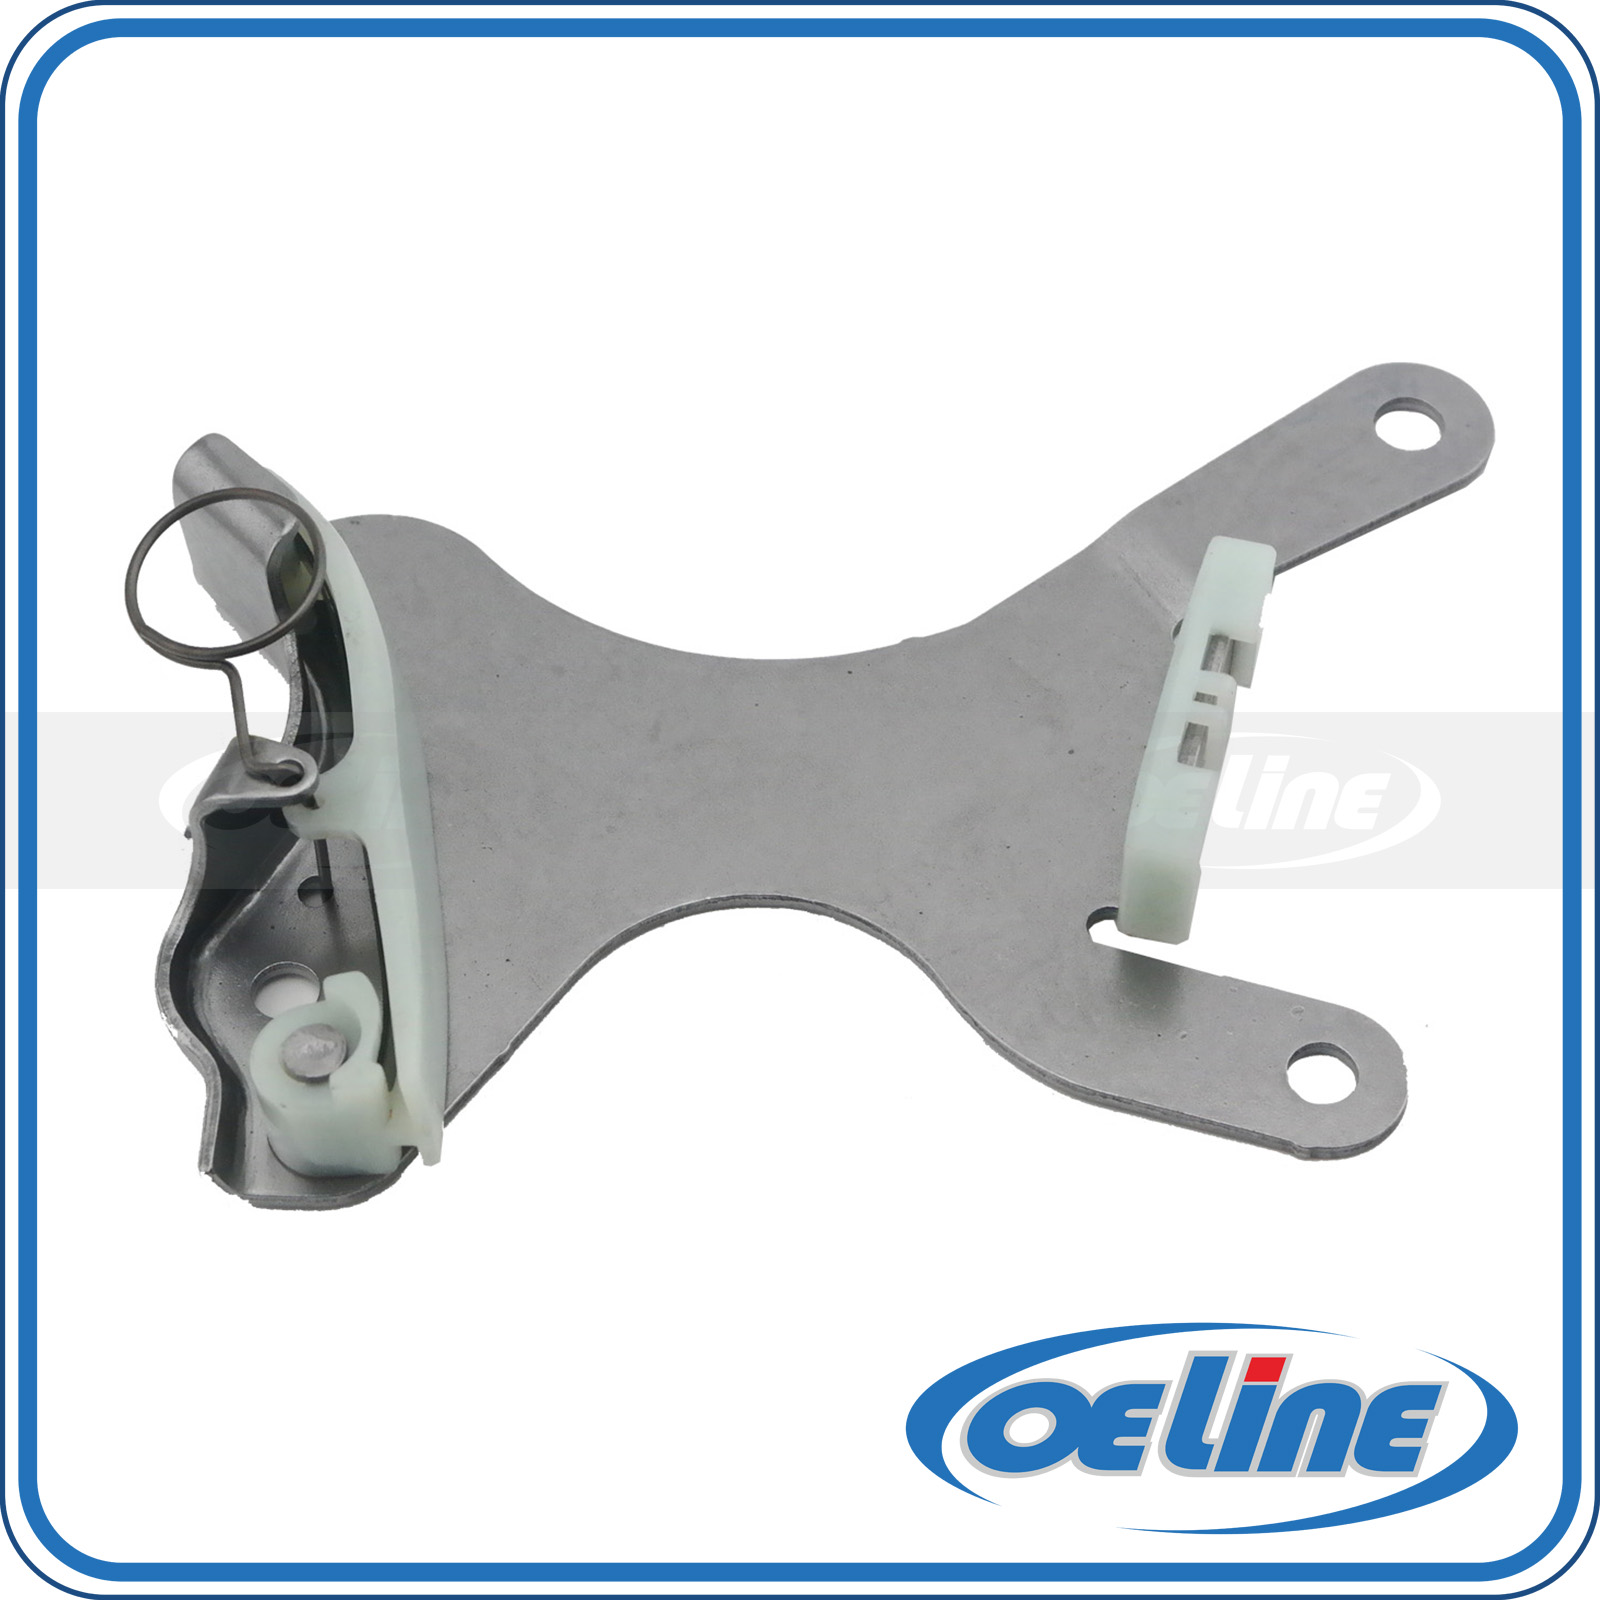 Mazda Cx 7 2010 2011 Timing Chain Tensioner: Timing Chain Tensioner Fit 1999-2013 Chrysler Dodge Jeep 3